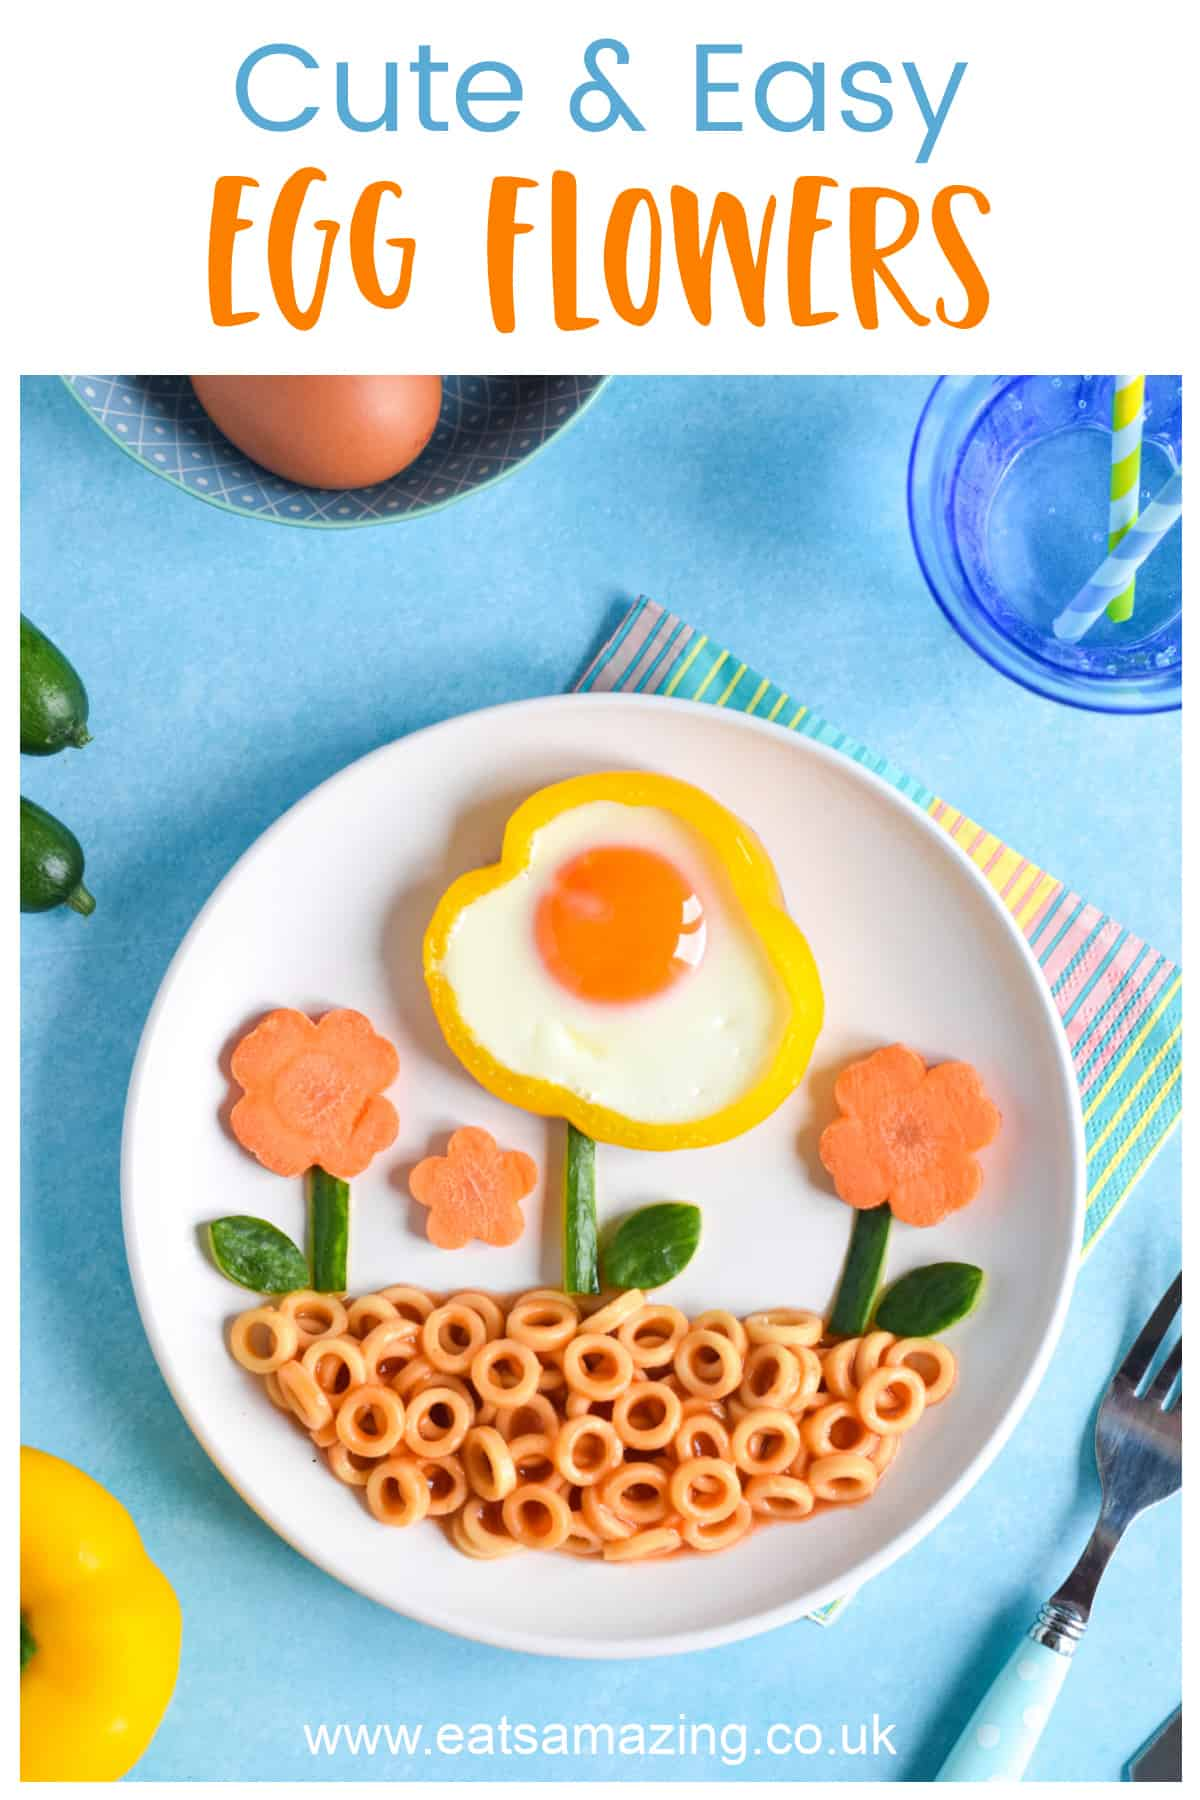 How to make cute and easy egg flowers in pepper rings - fun meal idea for kids with Heinz Pasta No Added Sugar